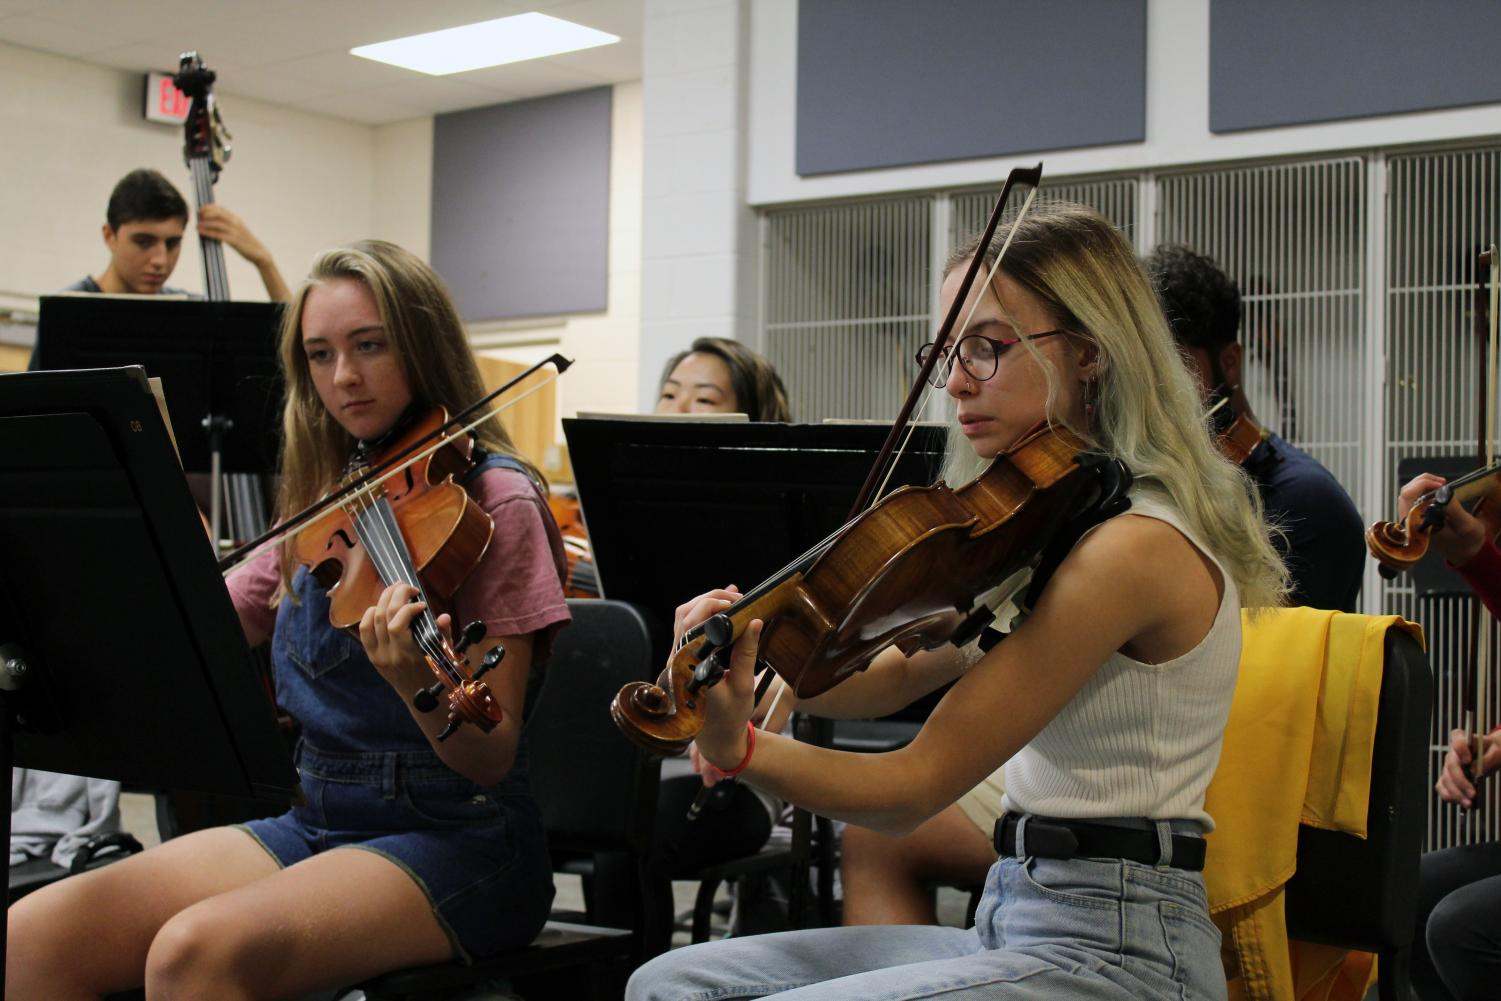 Seniors+Grace+Hart+and+Liz+Efken+practice+their+Shostakovich+piece+with+their+violas+as+they+wait+for+director+Nate+McClendon+to+arrive+for+class.+The+orchestra+began+rehearsing+earlier+in+the+week+in+preparation+for+the+day+when+they+must+play+it+completely+by+memory.